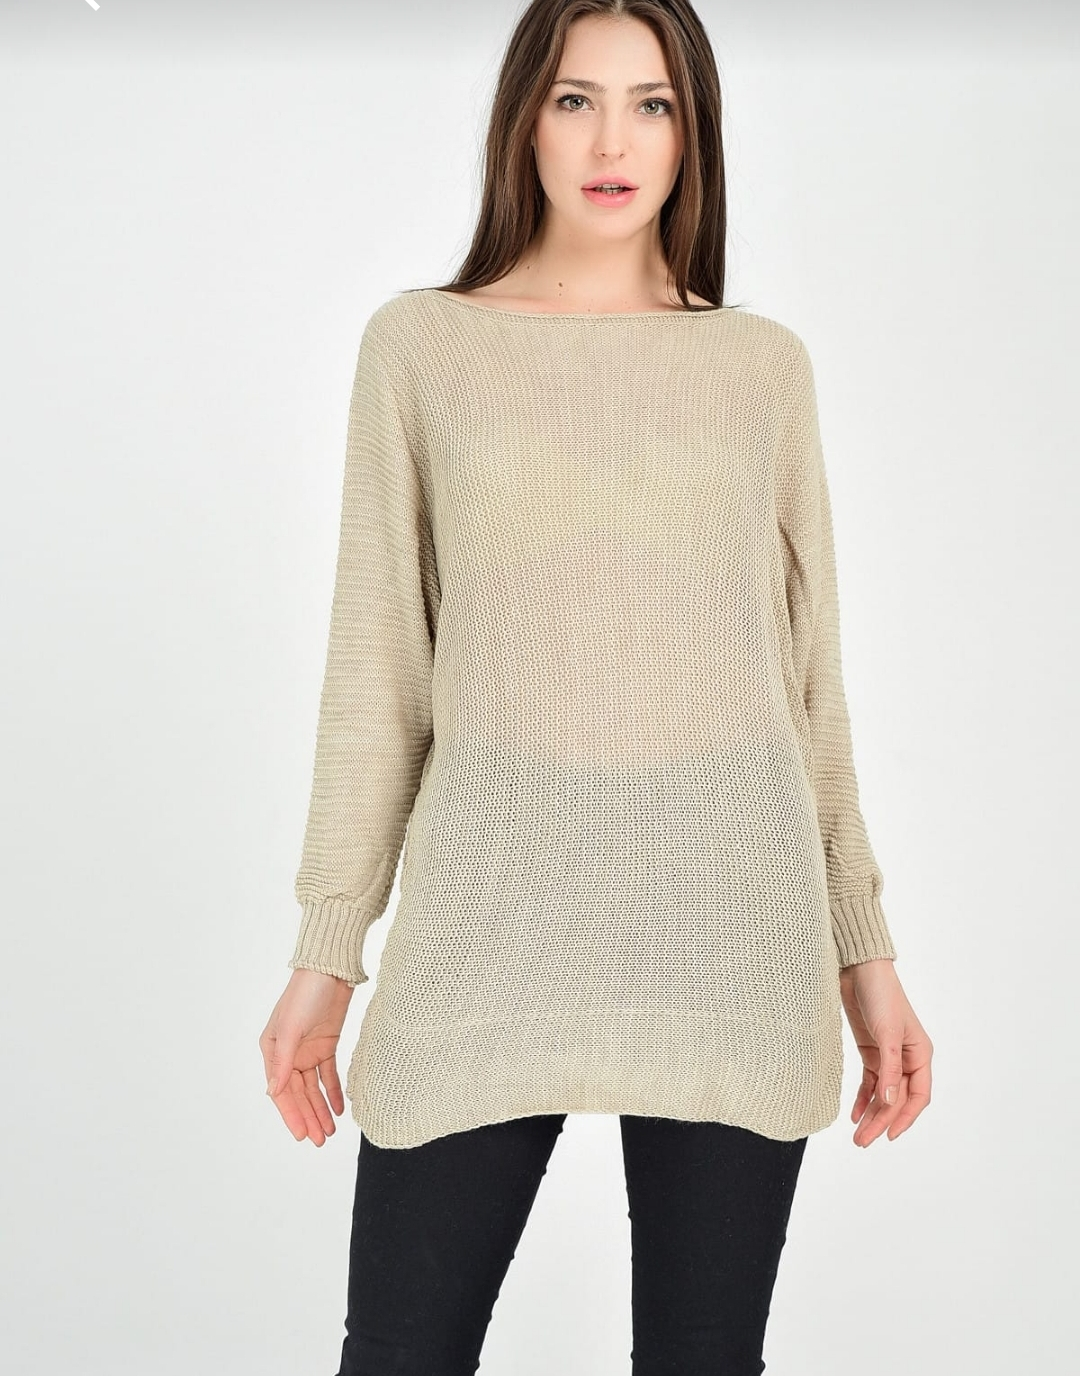 Sense women blouse